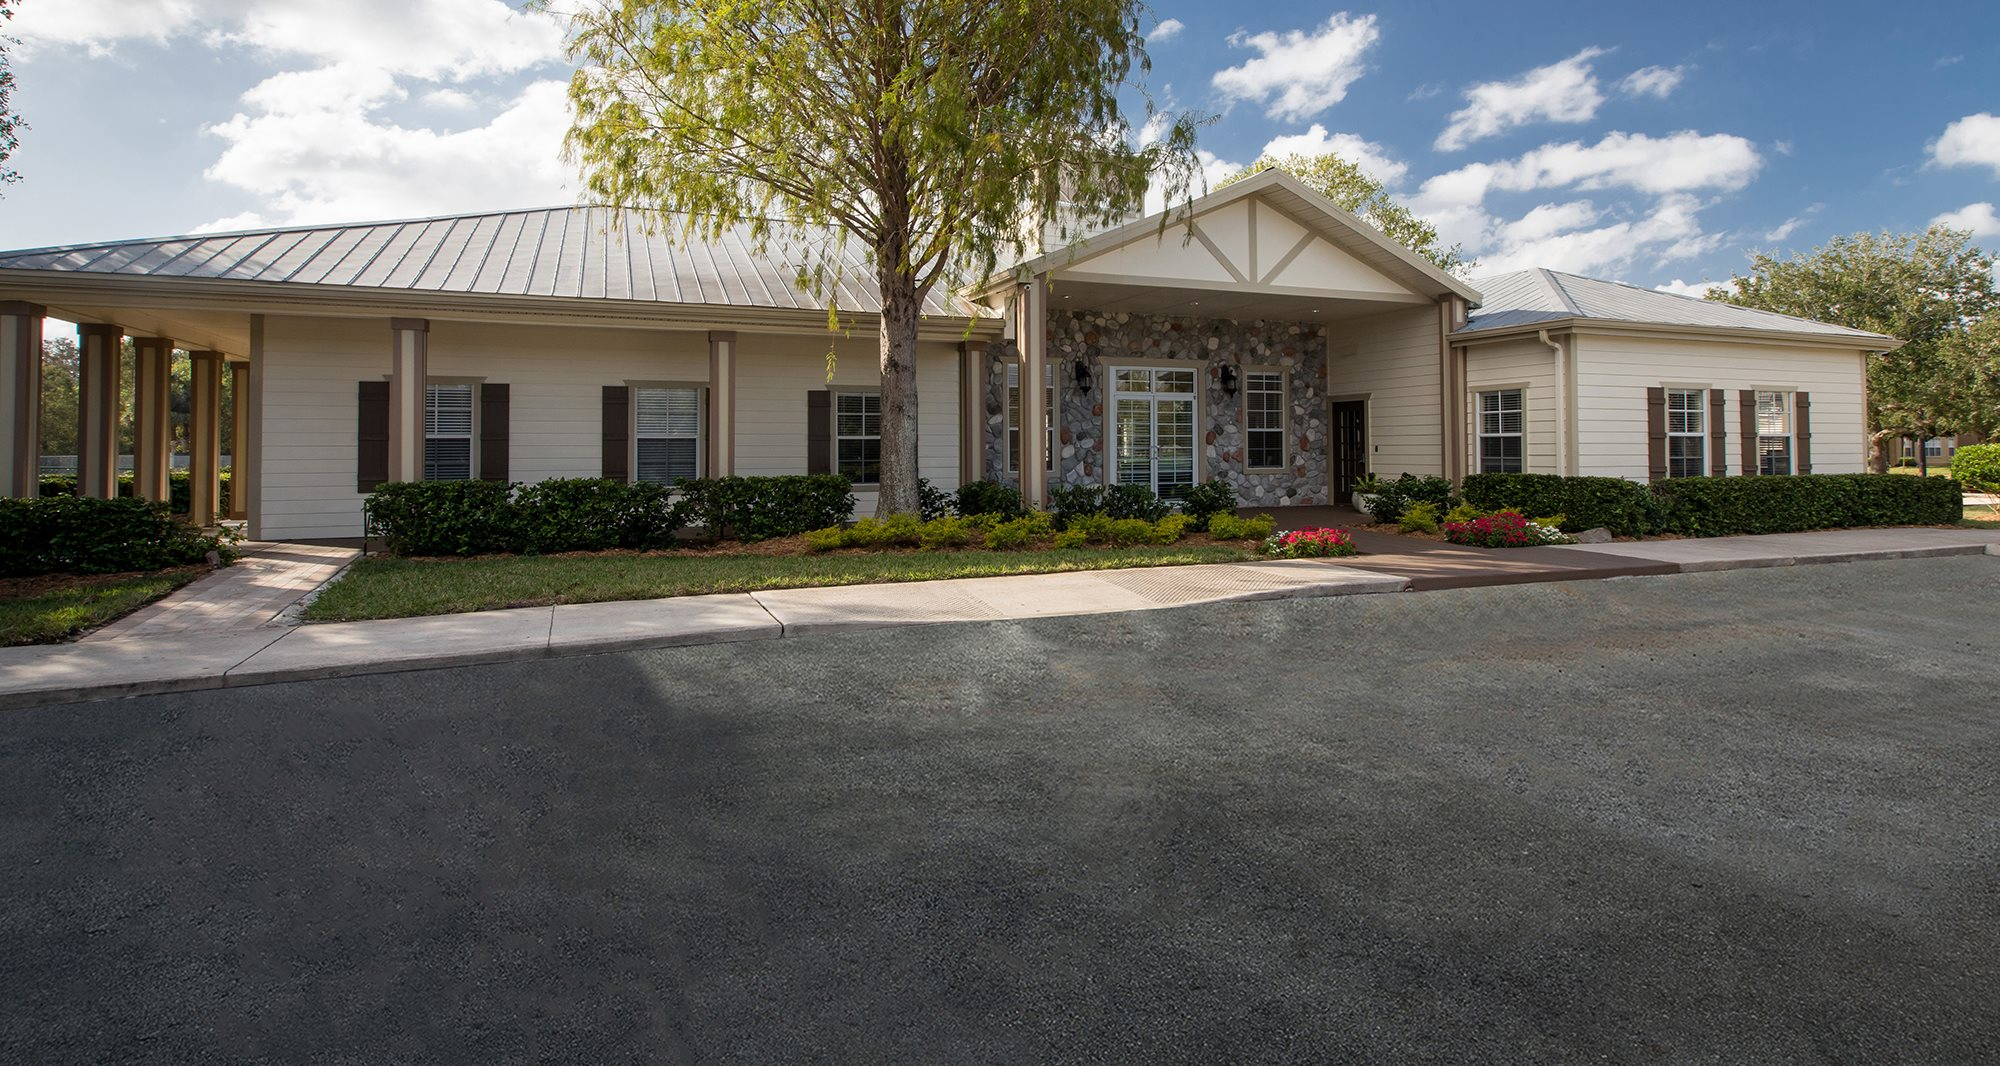 Retreat At Valencia For Rent In Orlando Fl Make This Community Your New Home